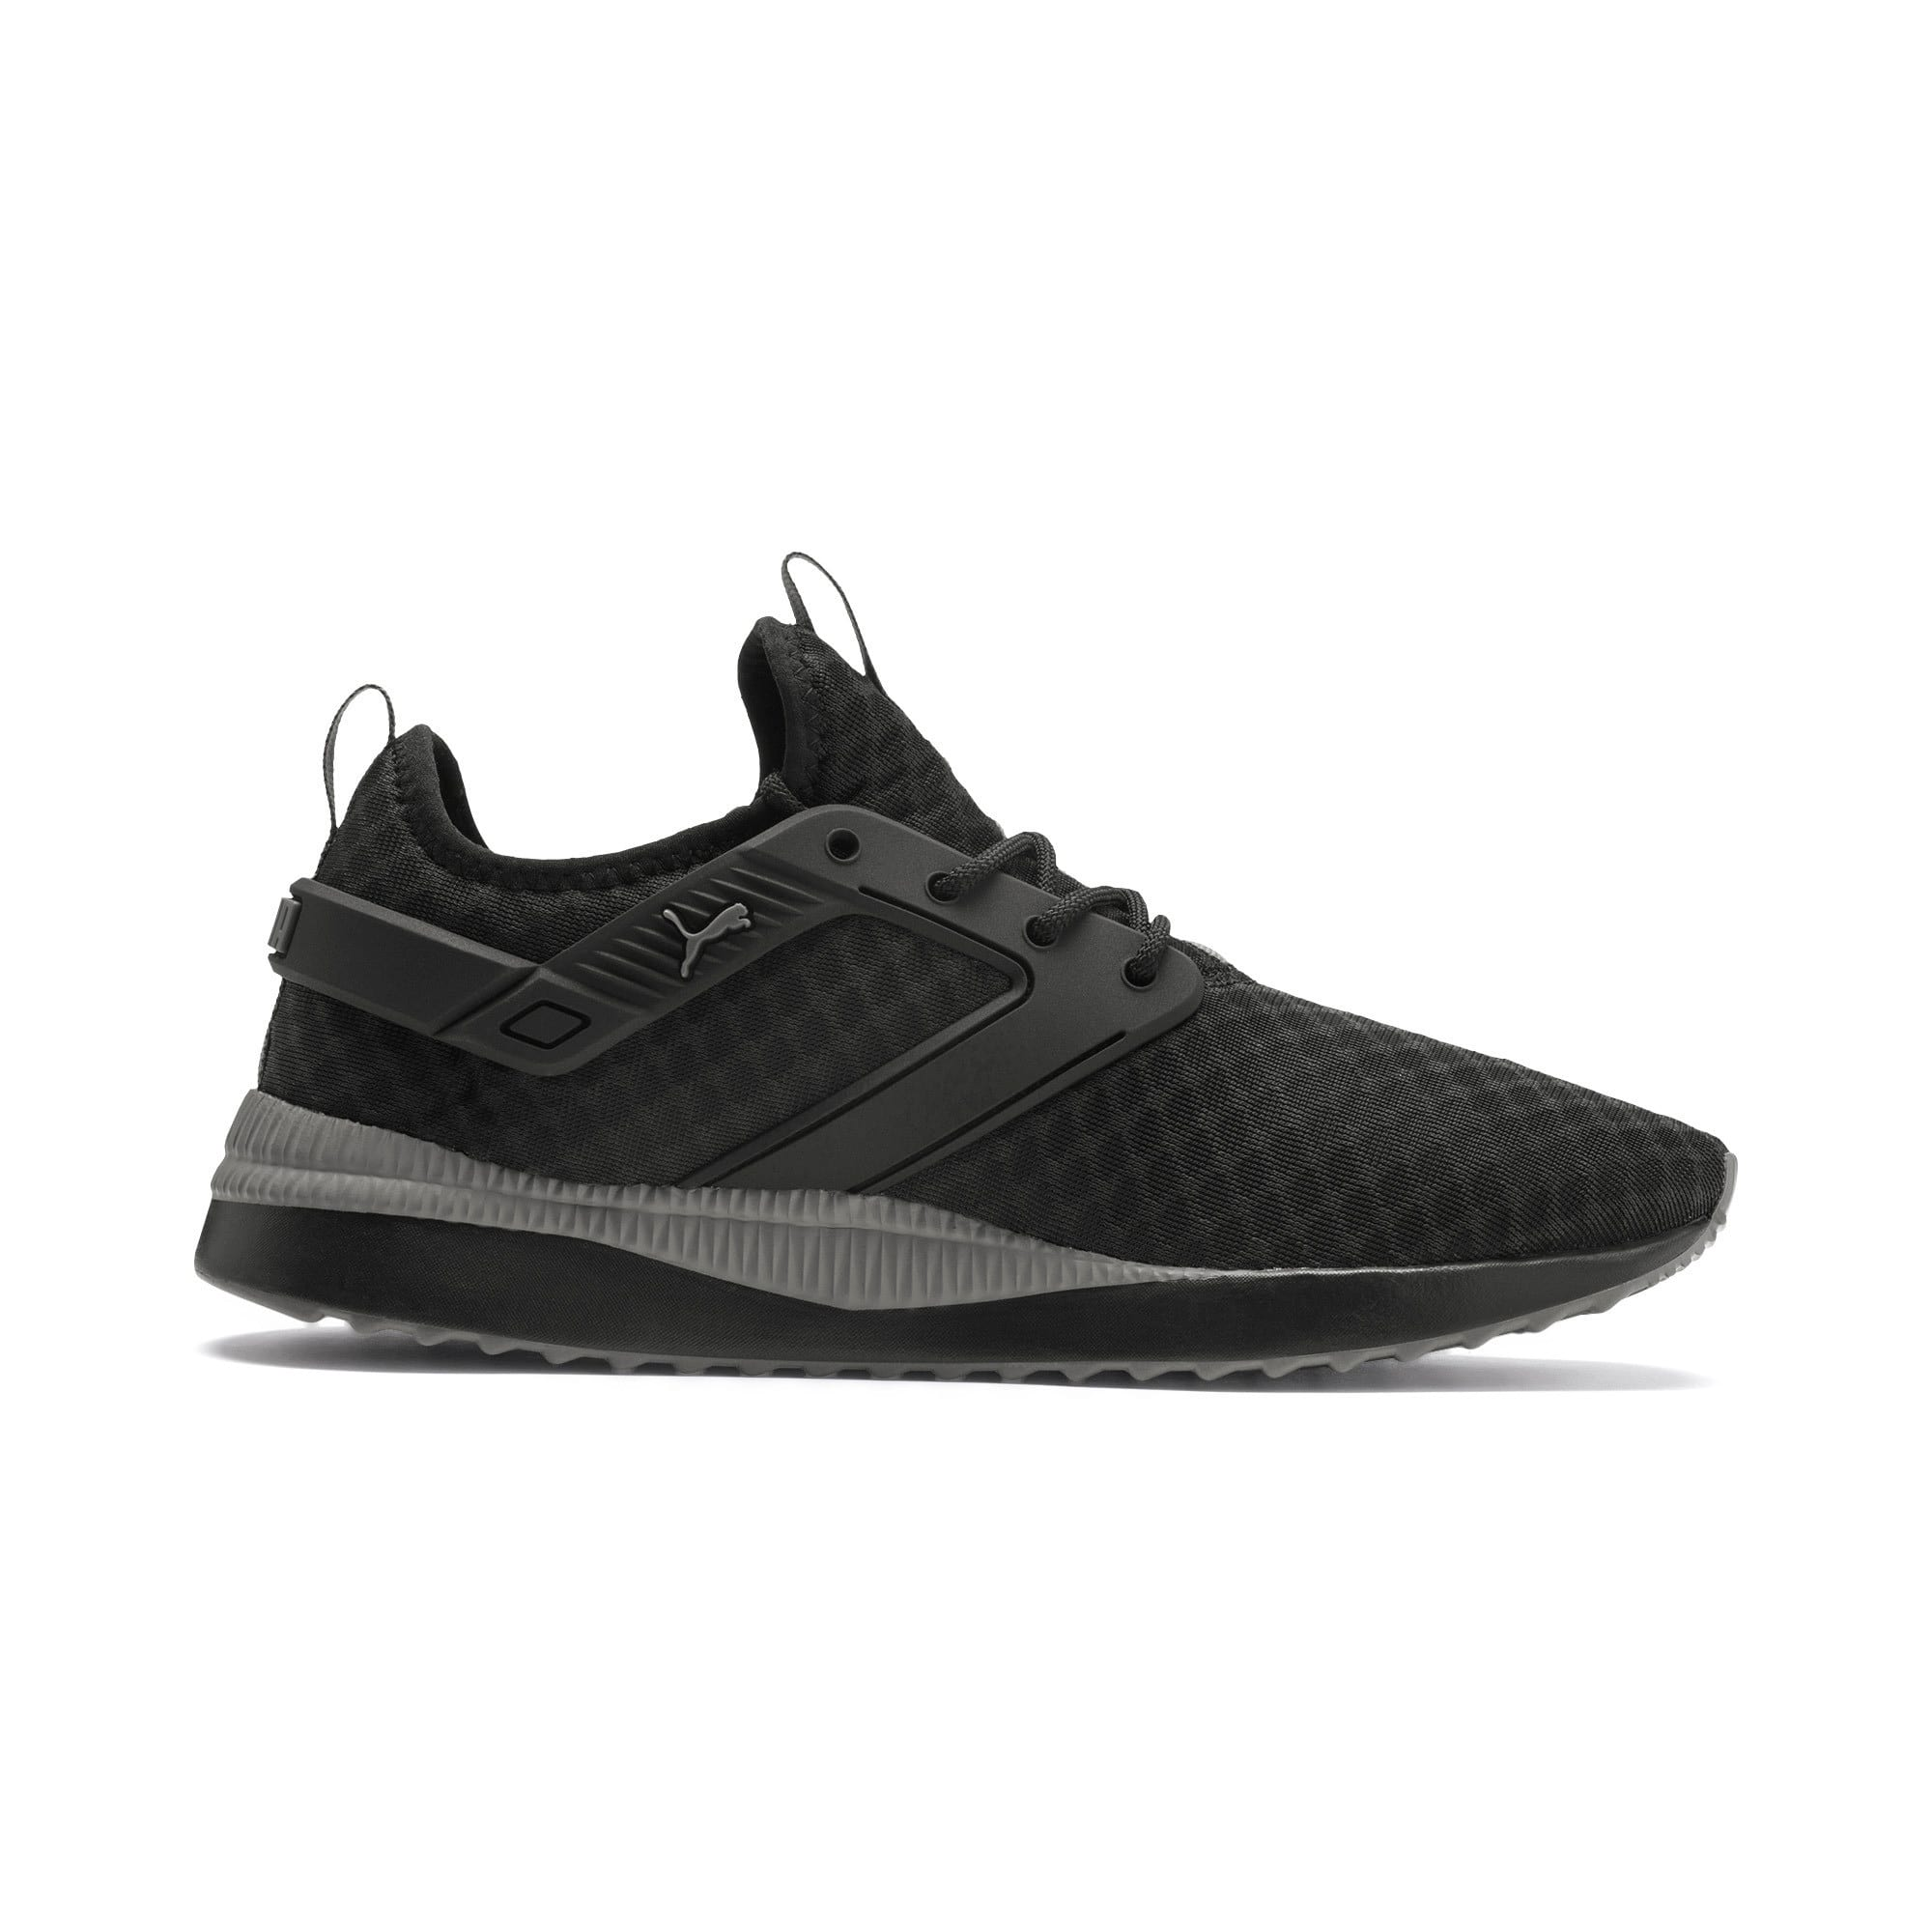 Thumbnail 6 of Pacer Next Excel Core Sneakers, Puma Black-Charcoal Gray, medium